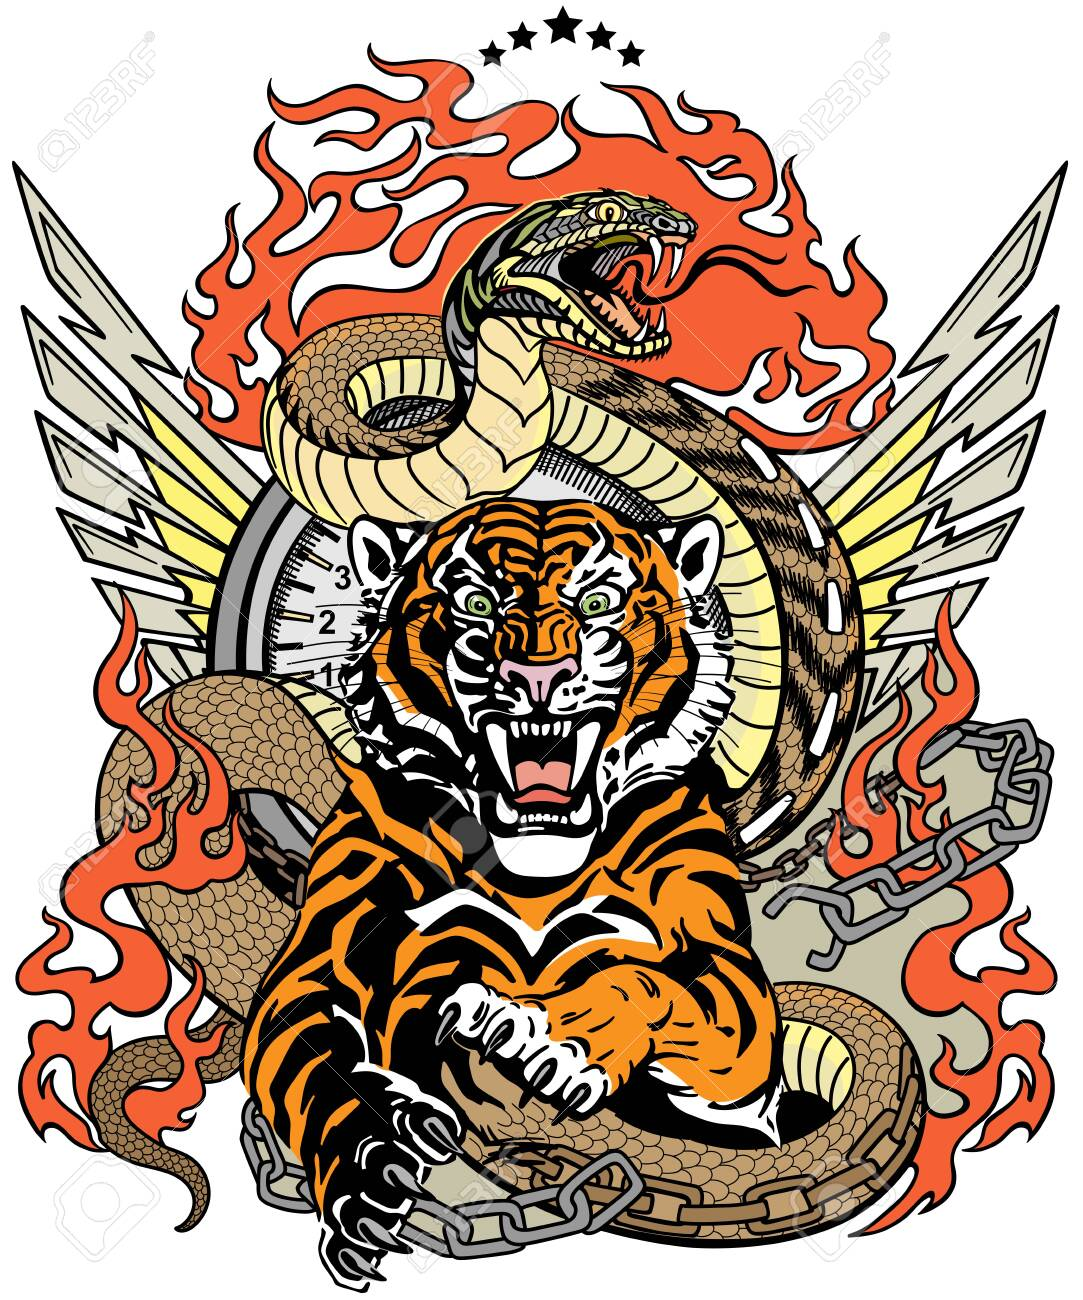 roaring tiger in the jump and snake like road. Design template include broken chain, tongues of flame and wings. Biker Tattoo. Vector illustration - 144077399